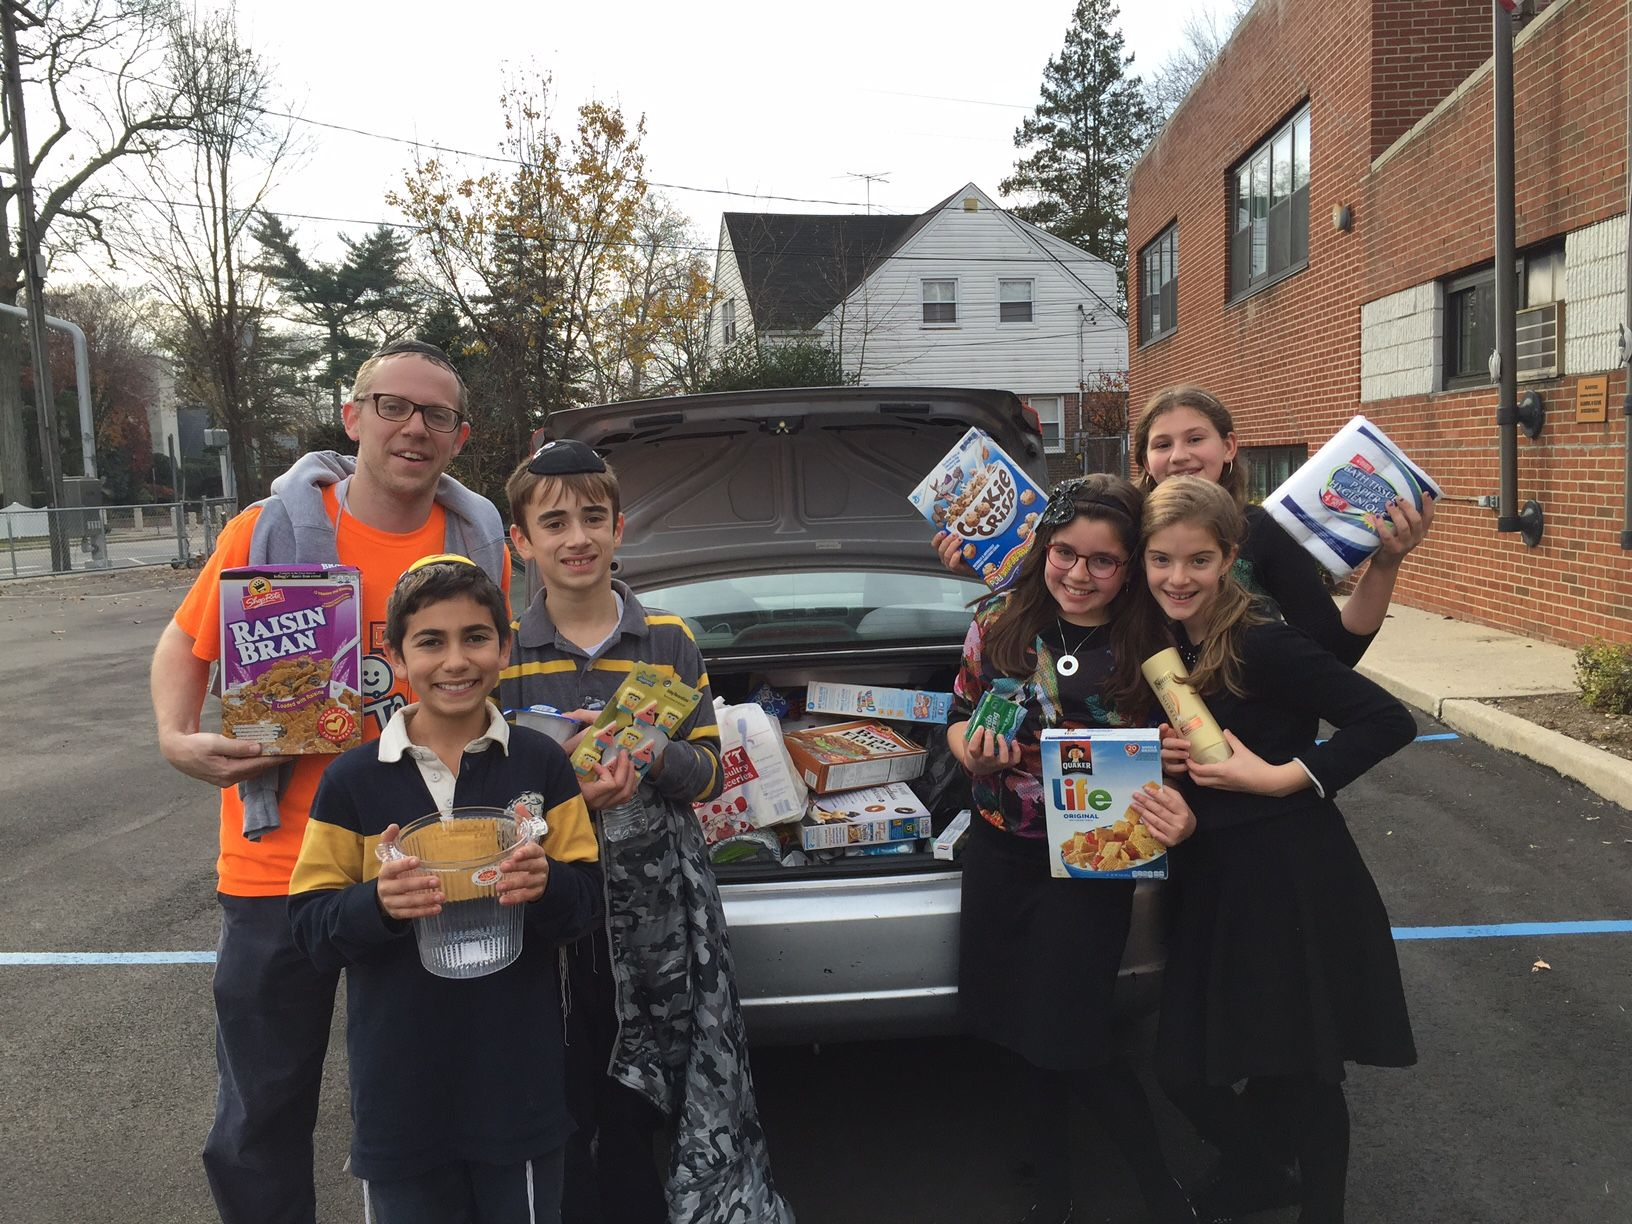 Congratulations to the Student Council on running a successful food drive.